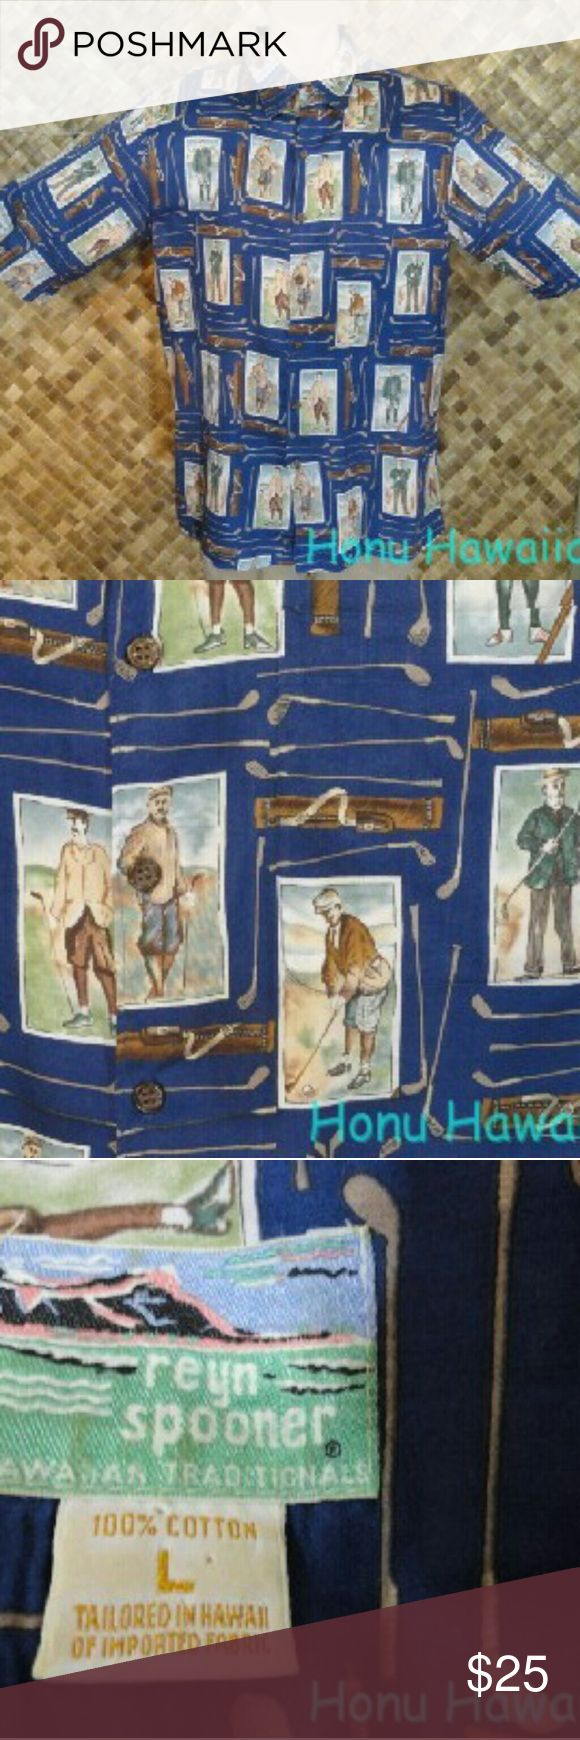 """REYN SPOONER mens HAWAIIAN GOLFERS Shirt - Large AUTHENTIC HAWAIIAN - This listing is for a REYN SPOONER men's Hawaiian shirt. Made of a 100% Egyptian cotton fabric in a Hawaiian golfers block print. Shirt is button front with 7 button closures, 1 chest pocket, and short sleeves. This shirt is PRE-OWNED and in EXCELLENT wearable condition. There are no issues, there are no holes, rips, tears in the fabric, and no fading.   Size LARGE. Measurements: Length 28.5"""", Chest 48"""", Waist 46"""", Hip…"""